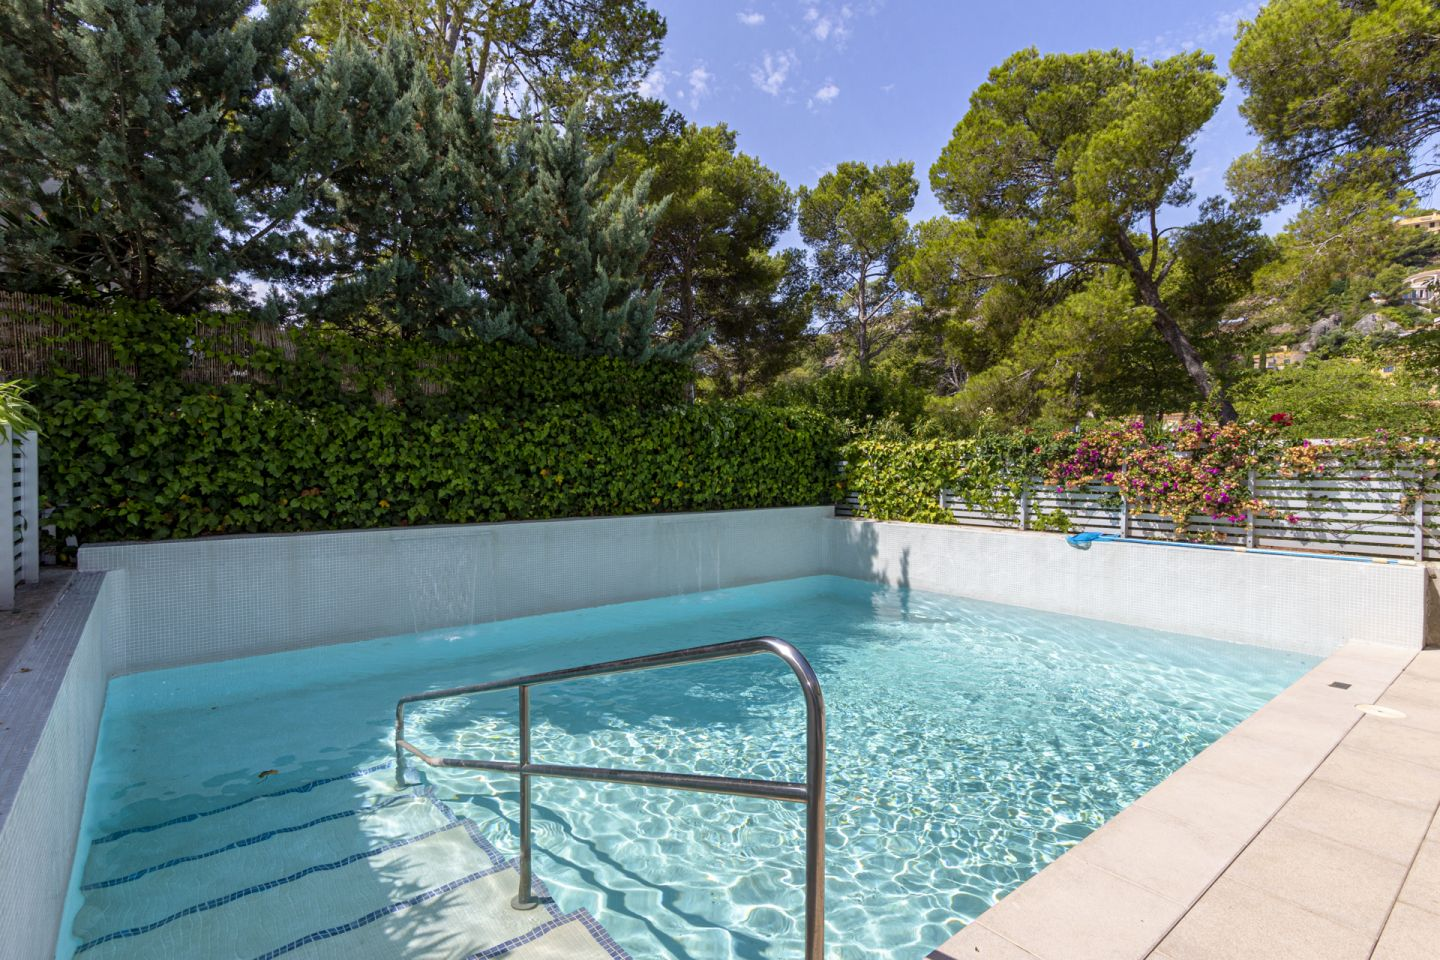 3 Bed Apartment for sale in Puerto Pollensa 18